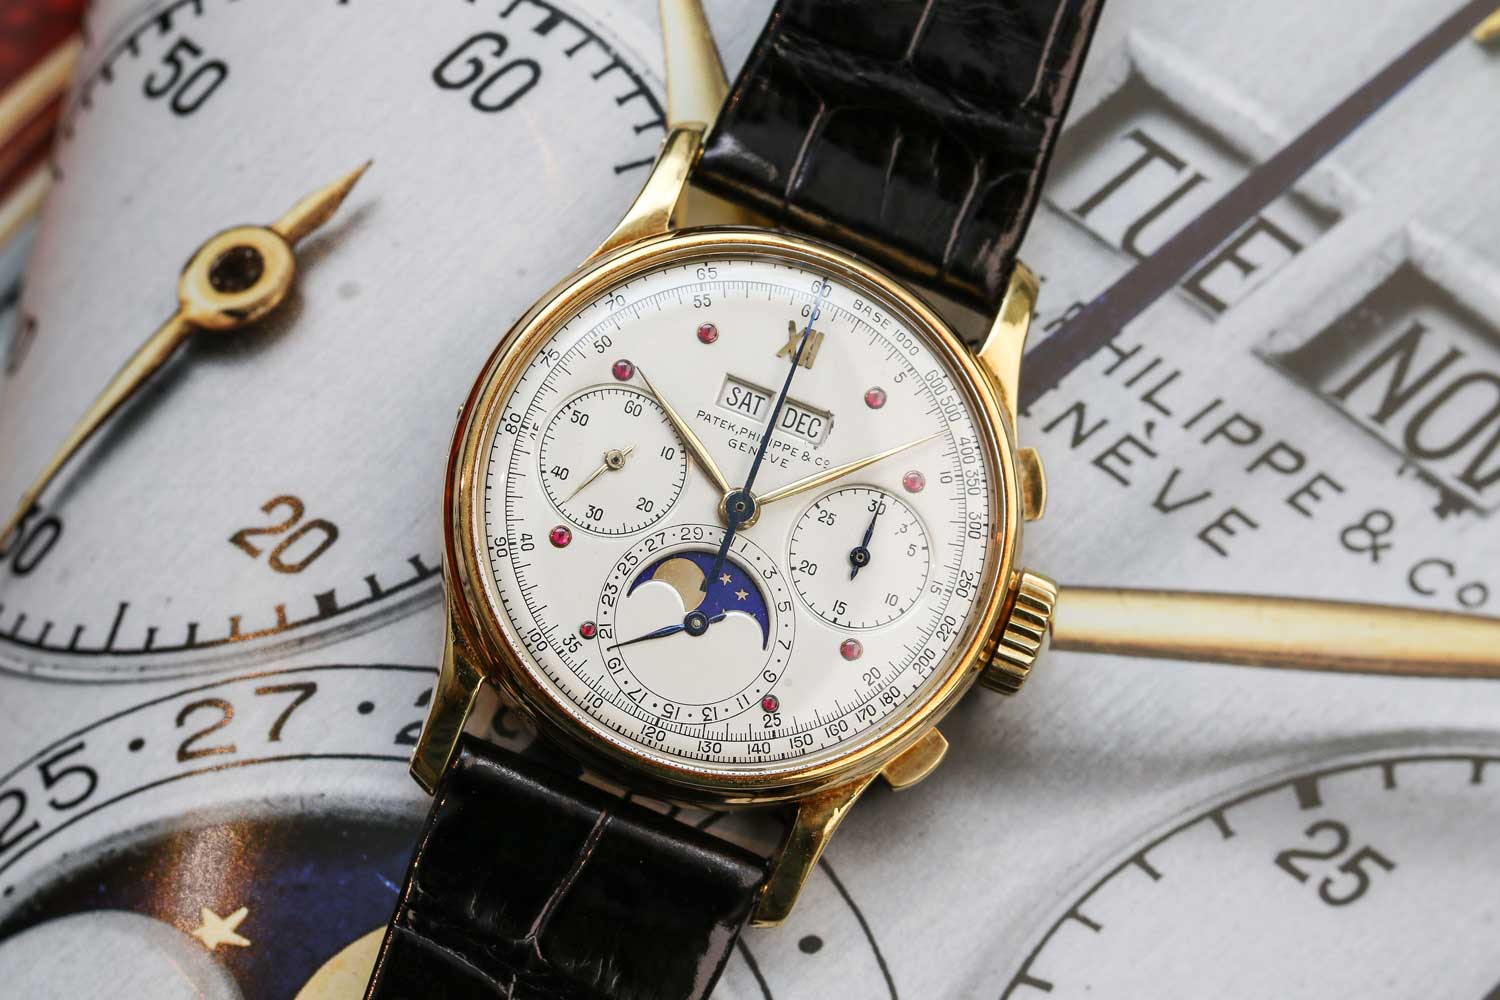 """The Patek Philippe ref. 1518 featuring the unique """"Charles Stern"""" dial offered at Christie's Hong Kong (©Revolution)"""